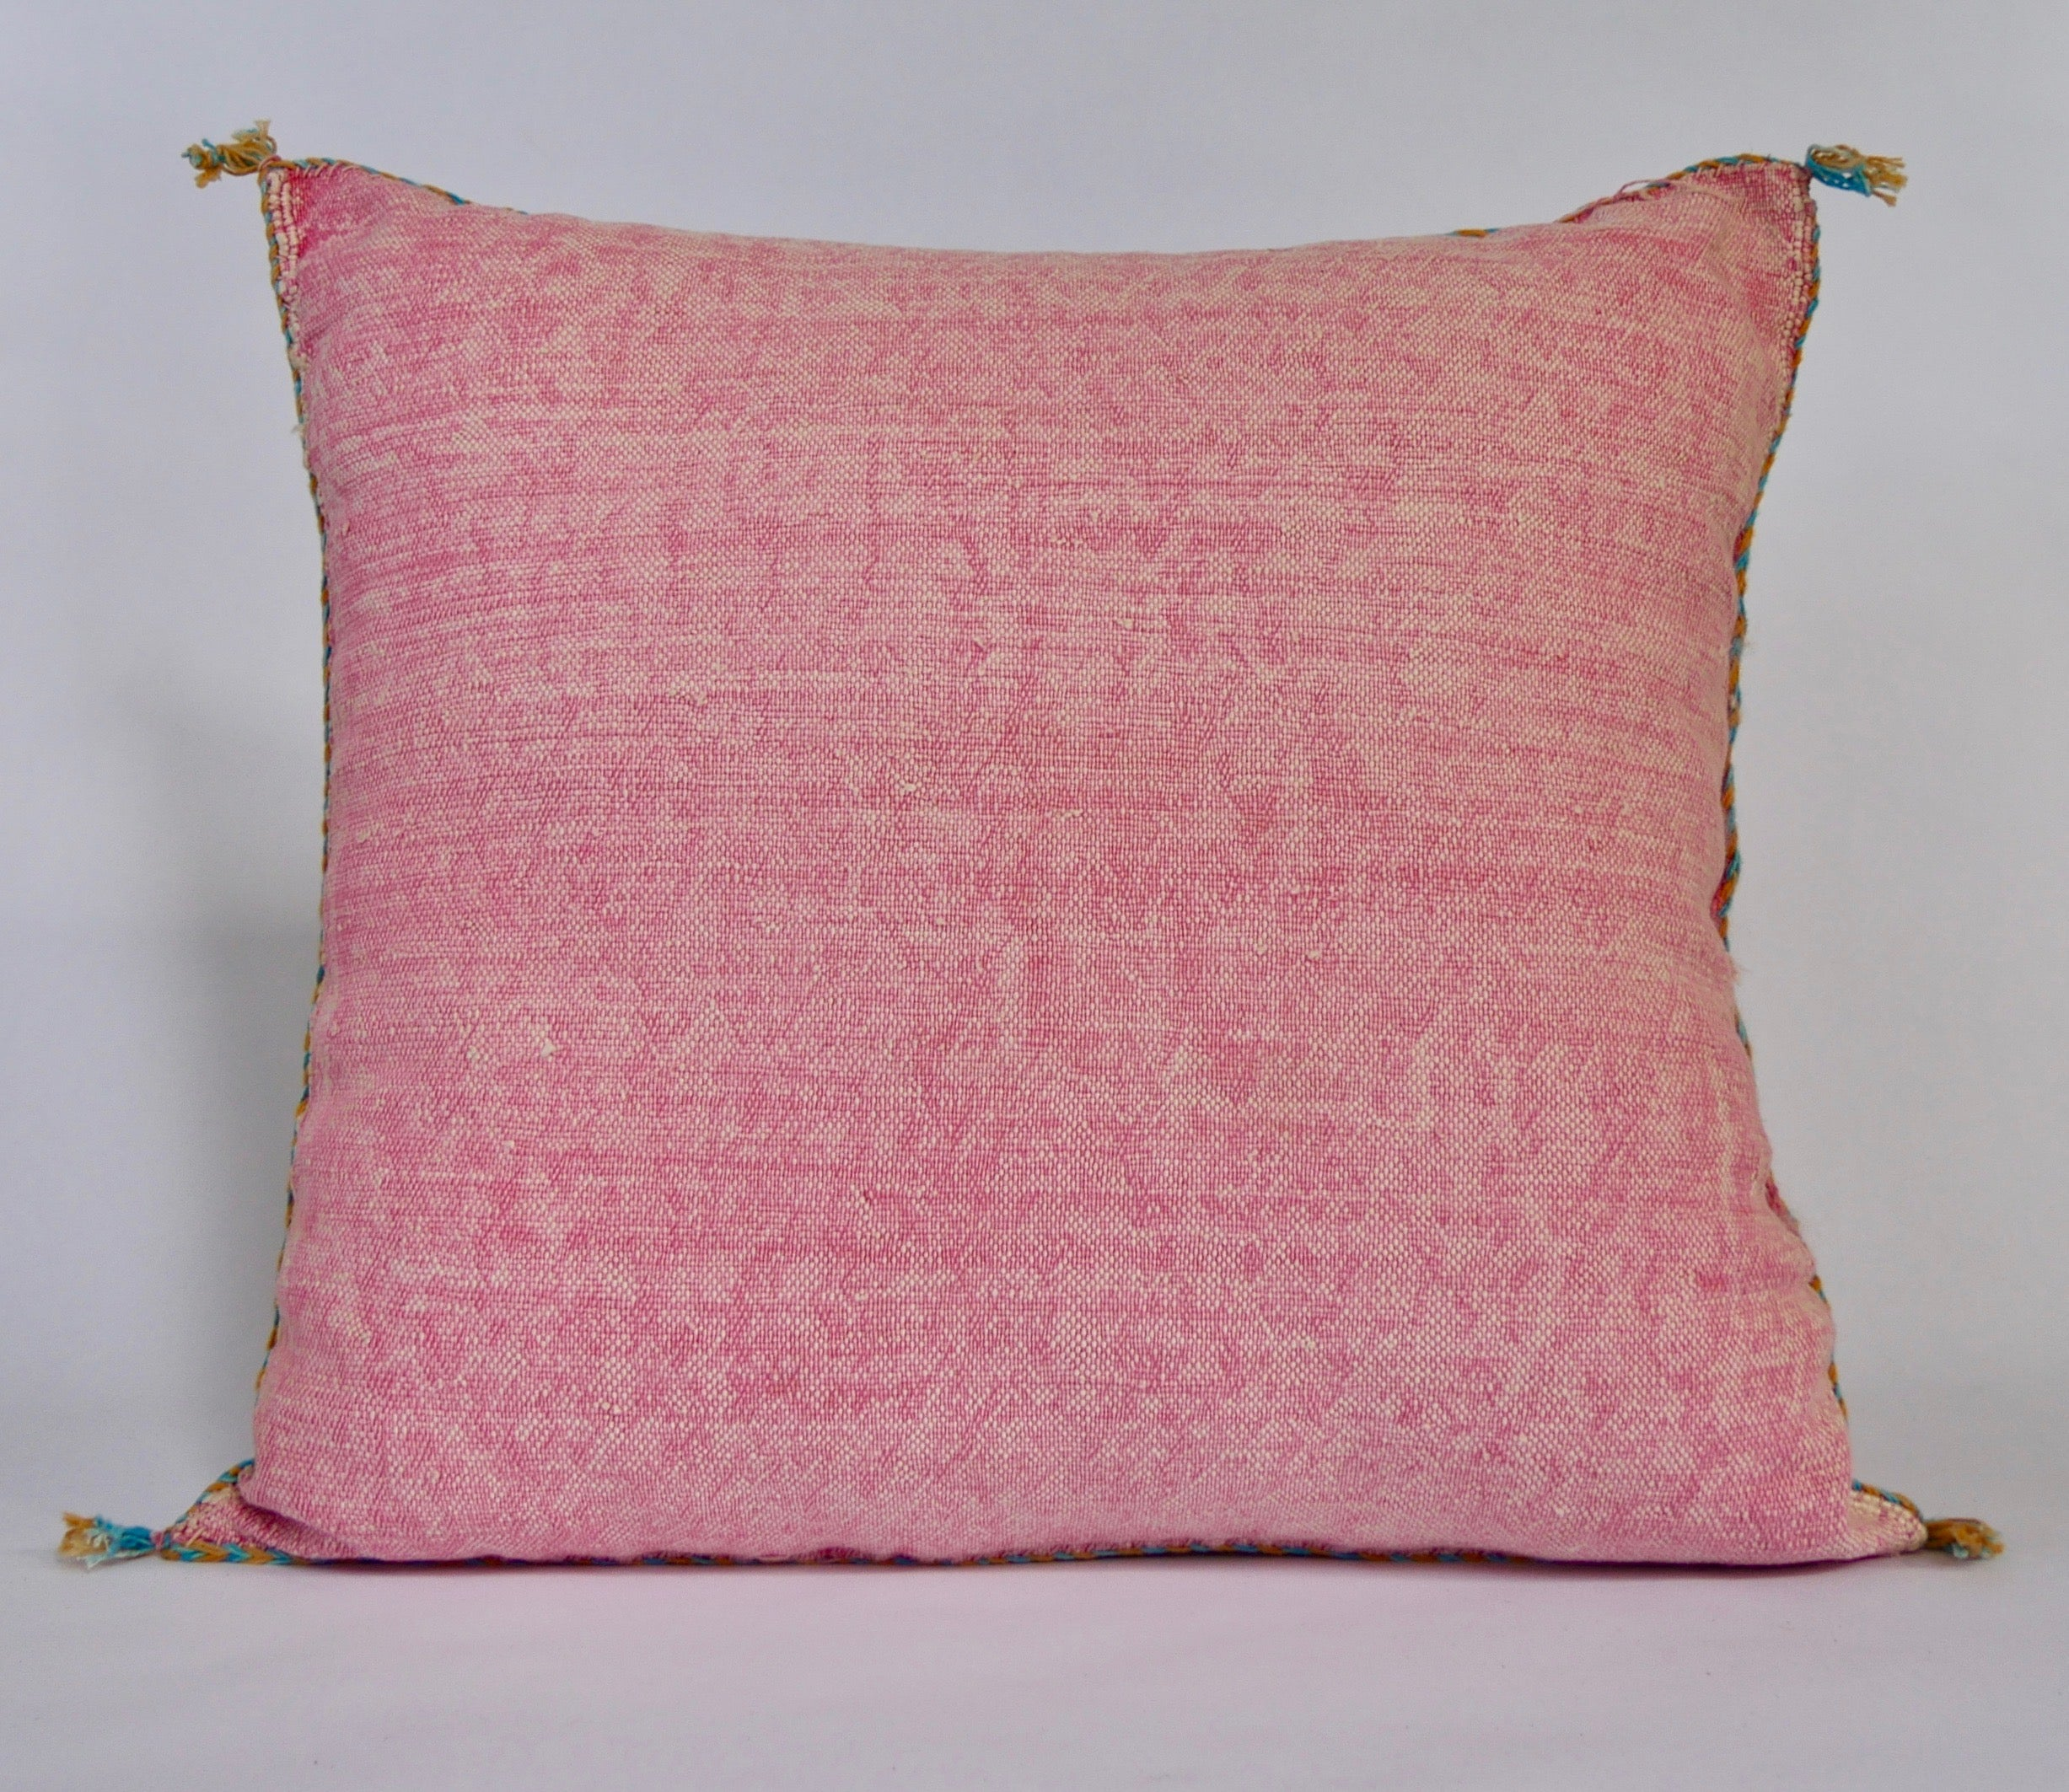 'BLUSH' BERBER WOOL PILLOW